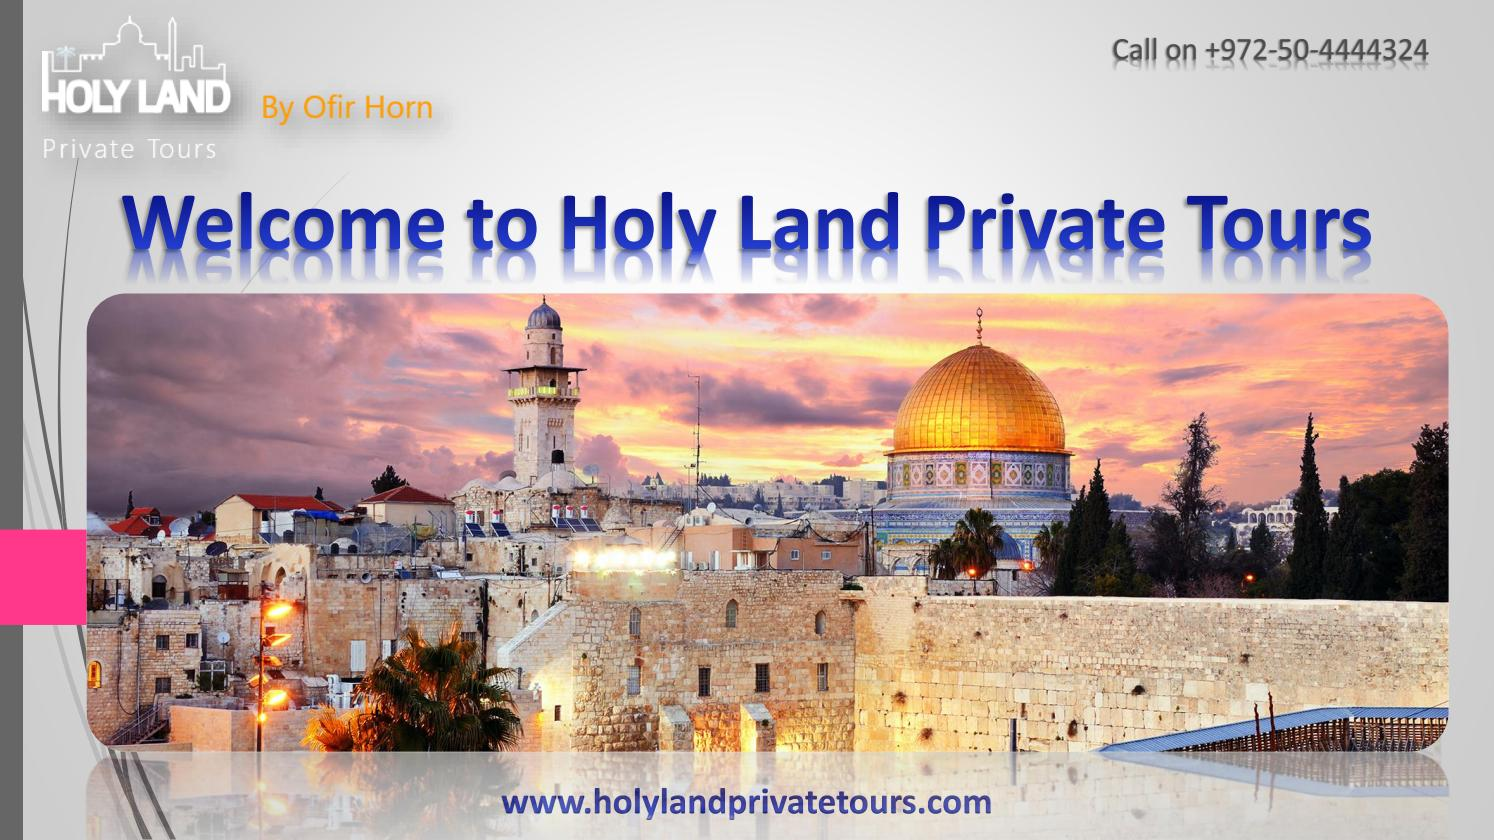 Hire Private Guide for Sea of Galilee Tour in Israel